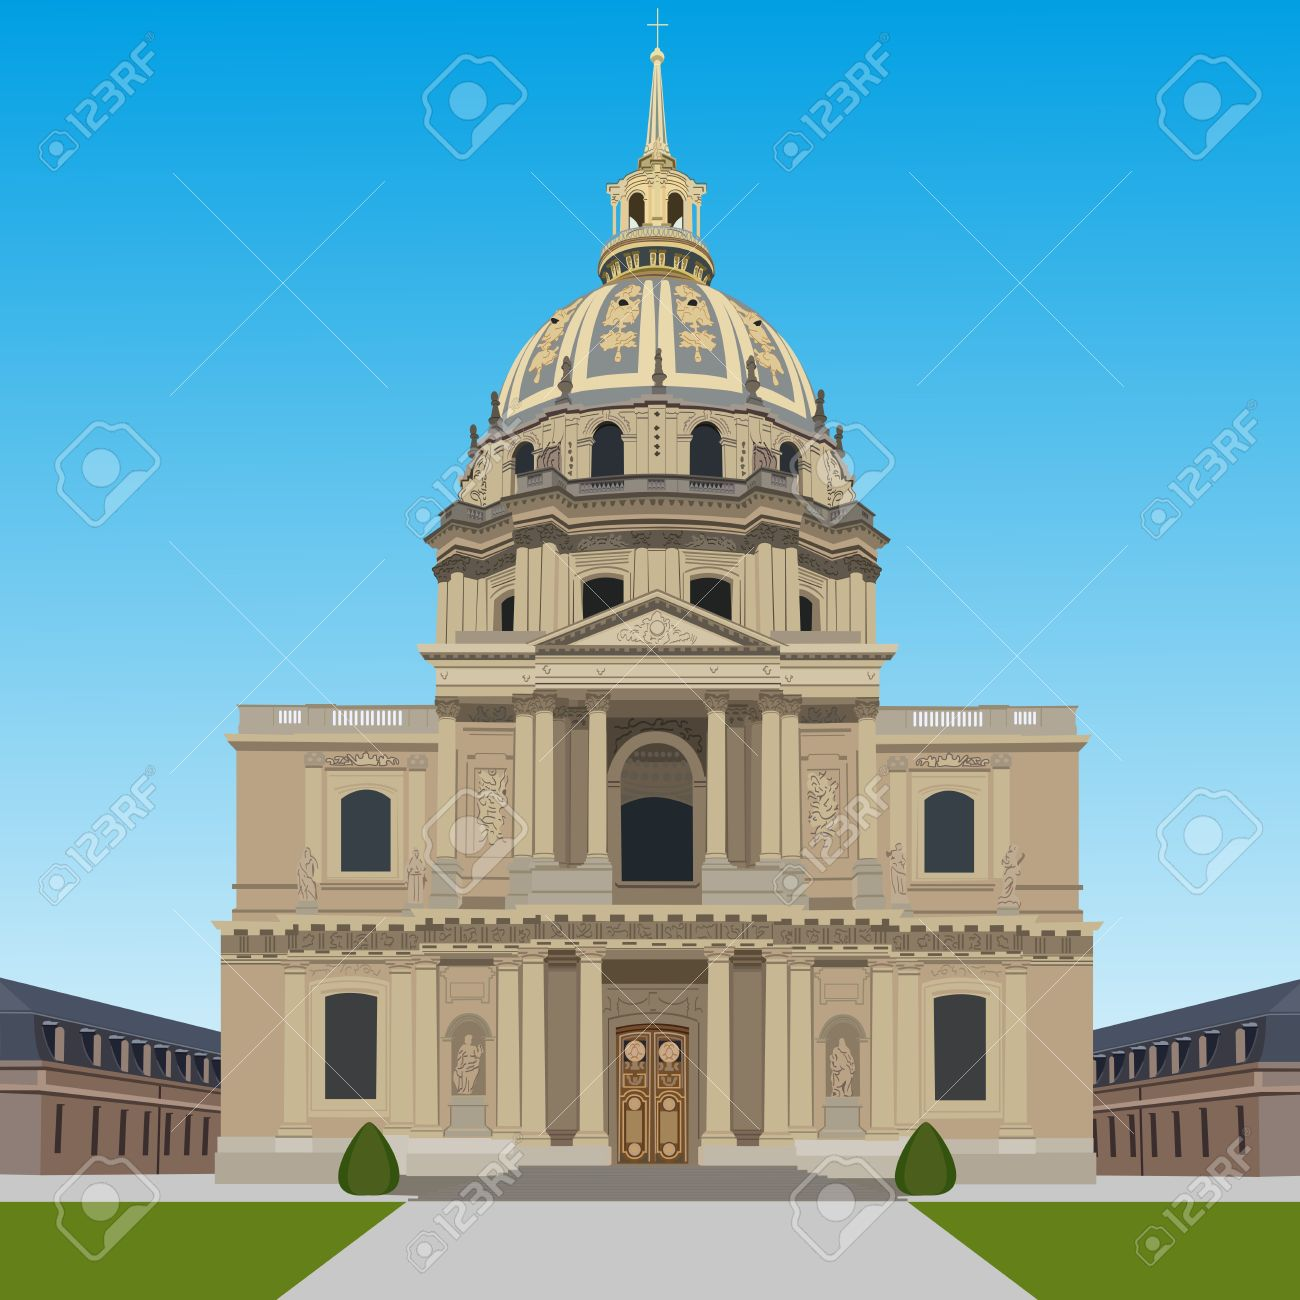 Les Invalides Royalty Free Cliparts, Vectors, And Stock.